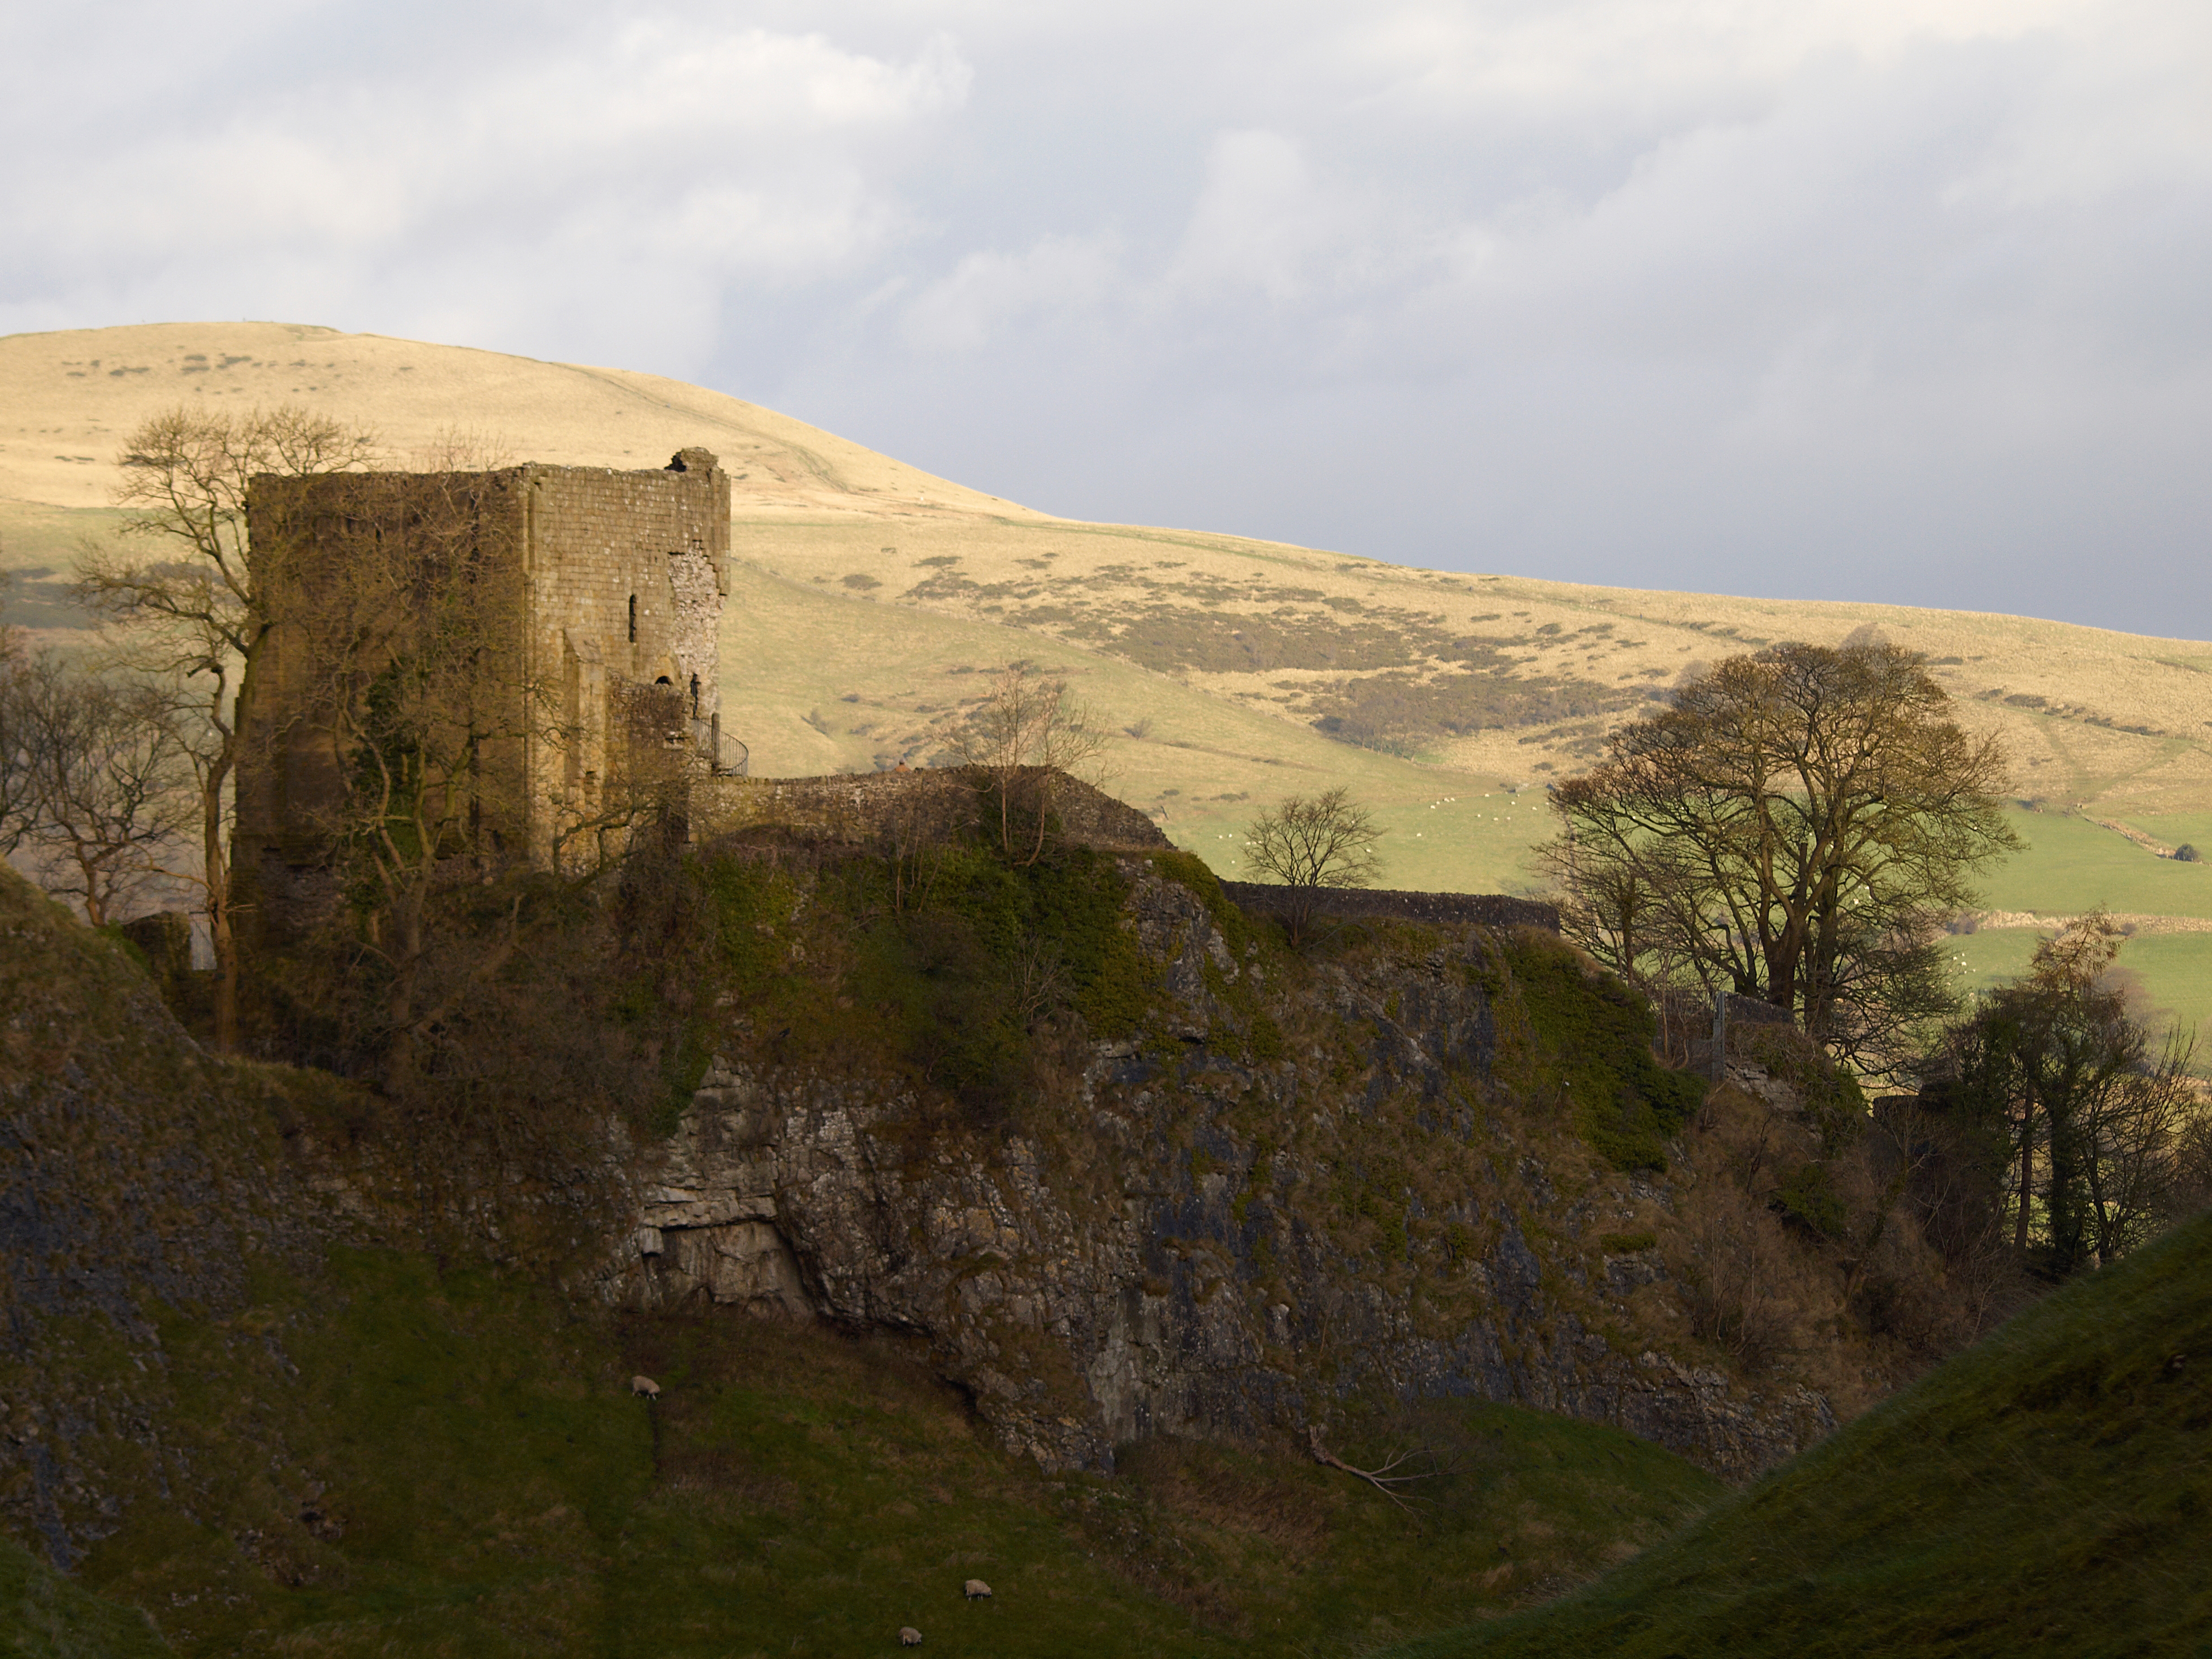 A stone tower with a wall running off to the right standing on top of a drop into a gorge. There are hills in the background.